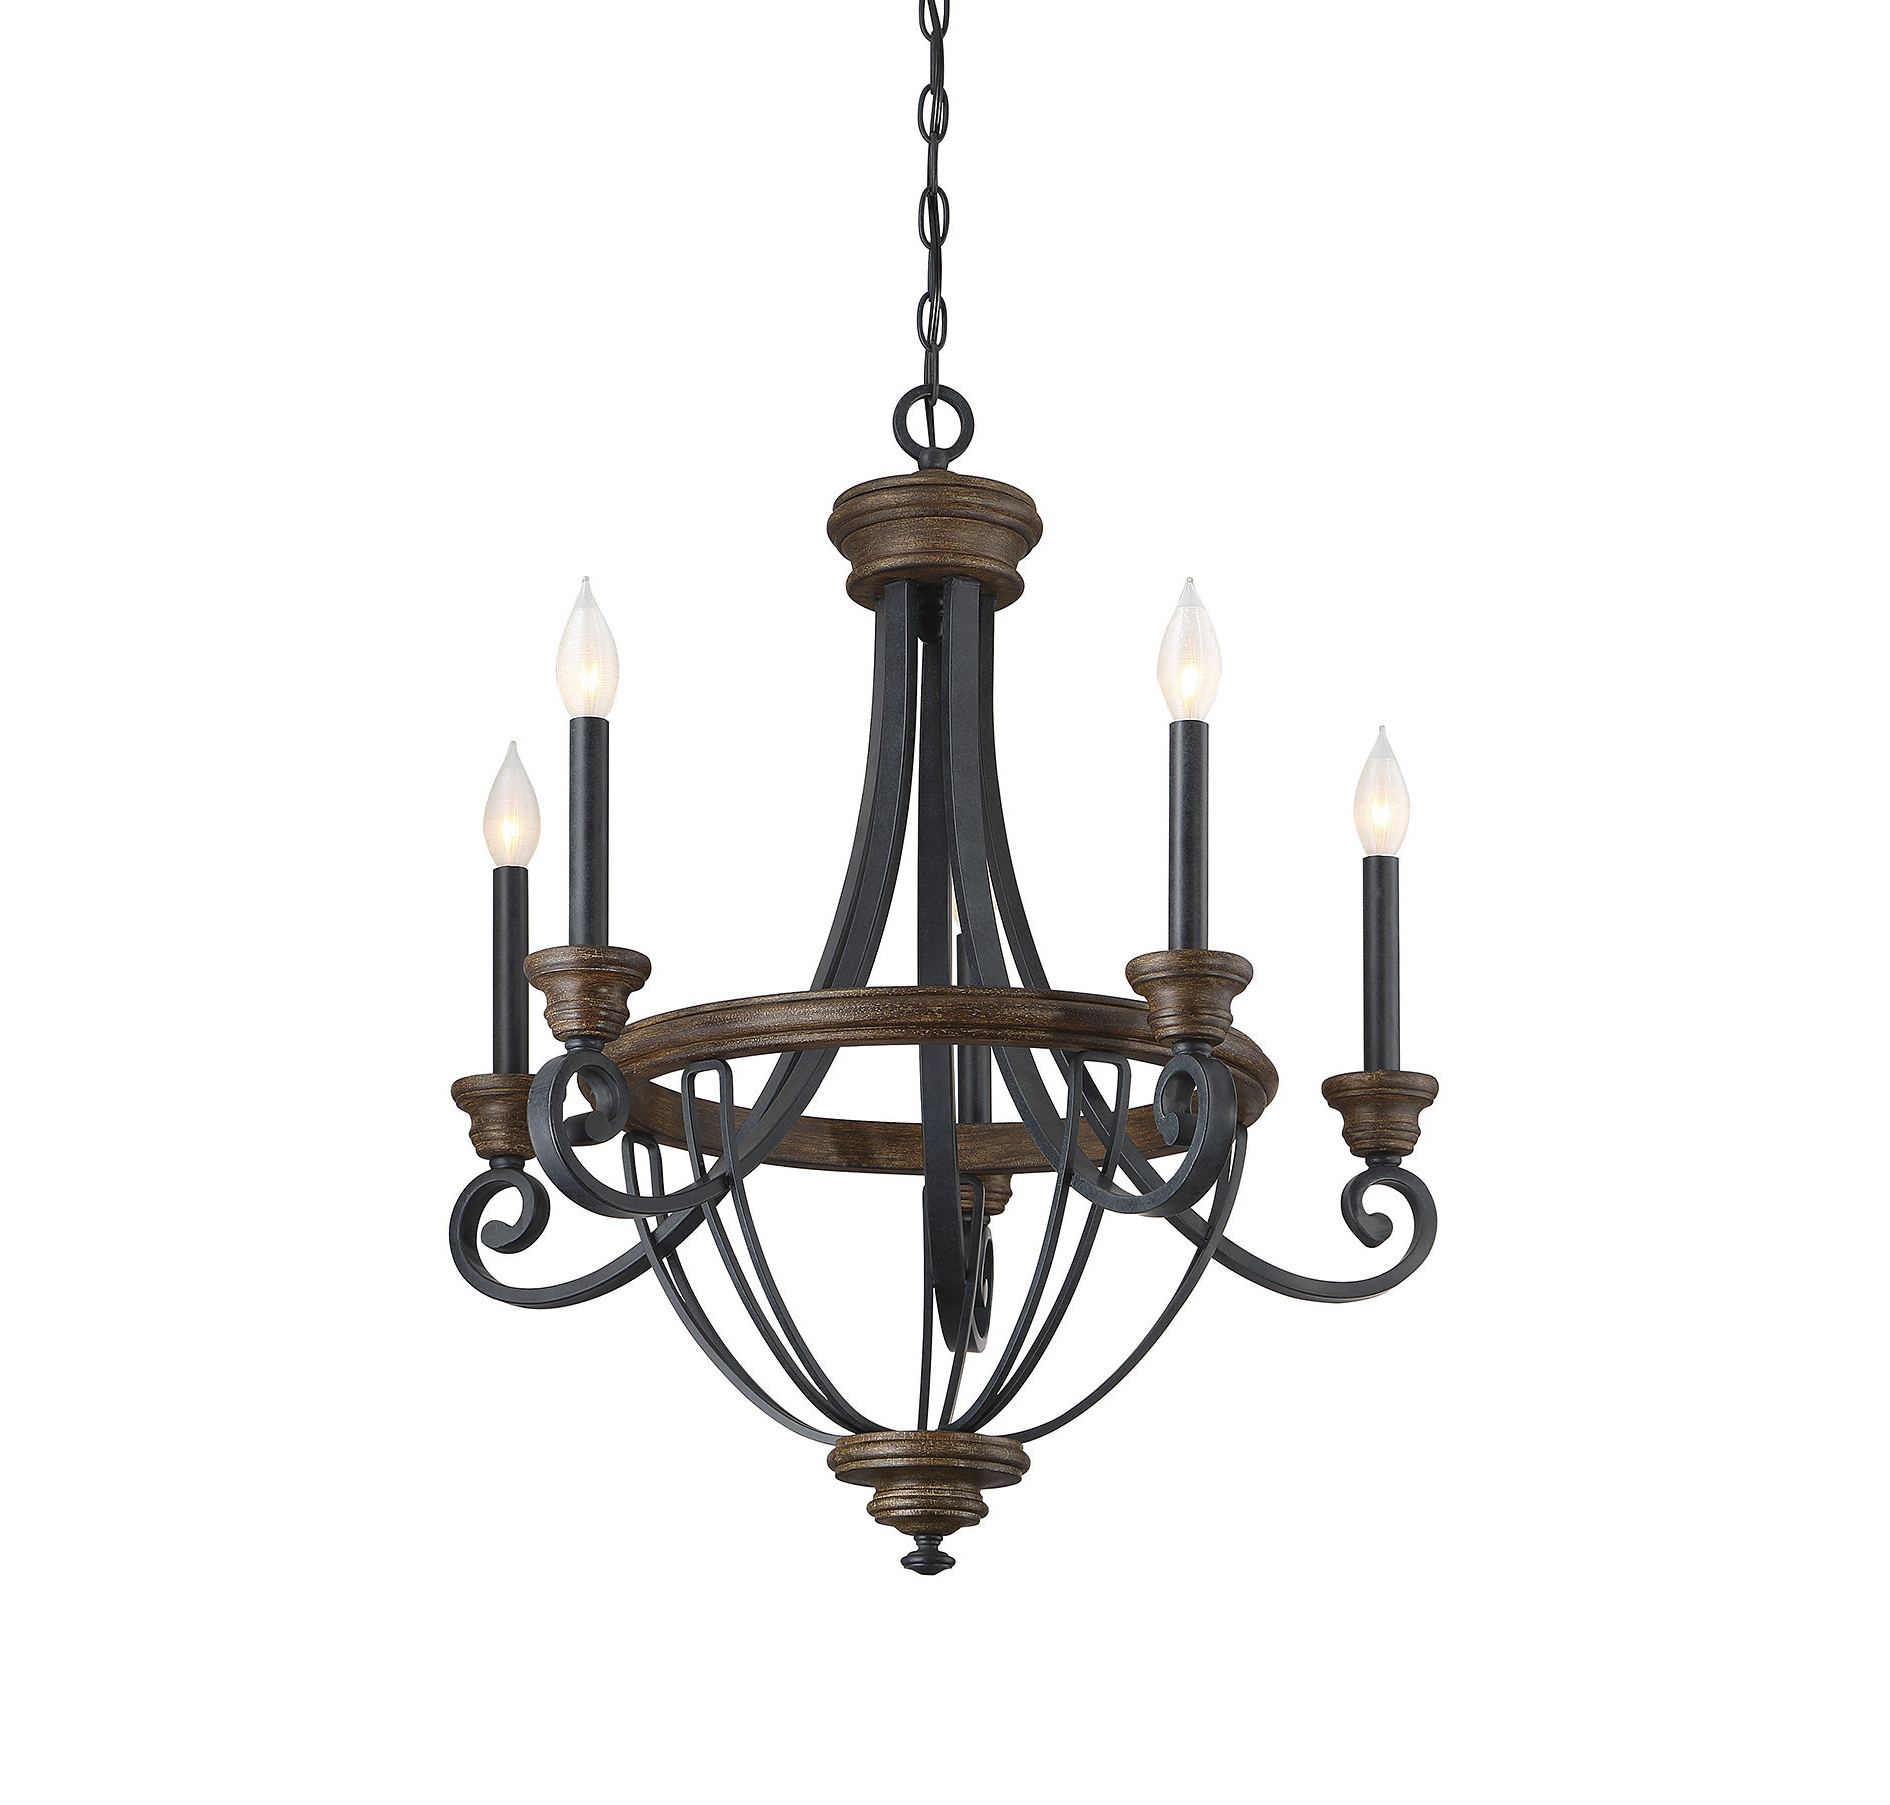 Nanteuil 5-Light Empire Chandelier within 2020 Kenna 5-Light Empire Chandeliers